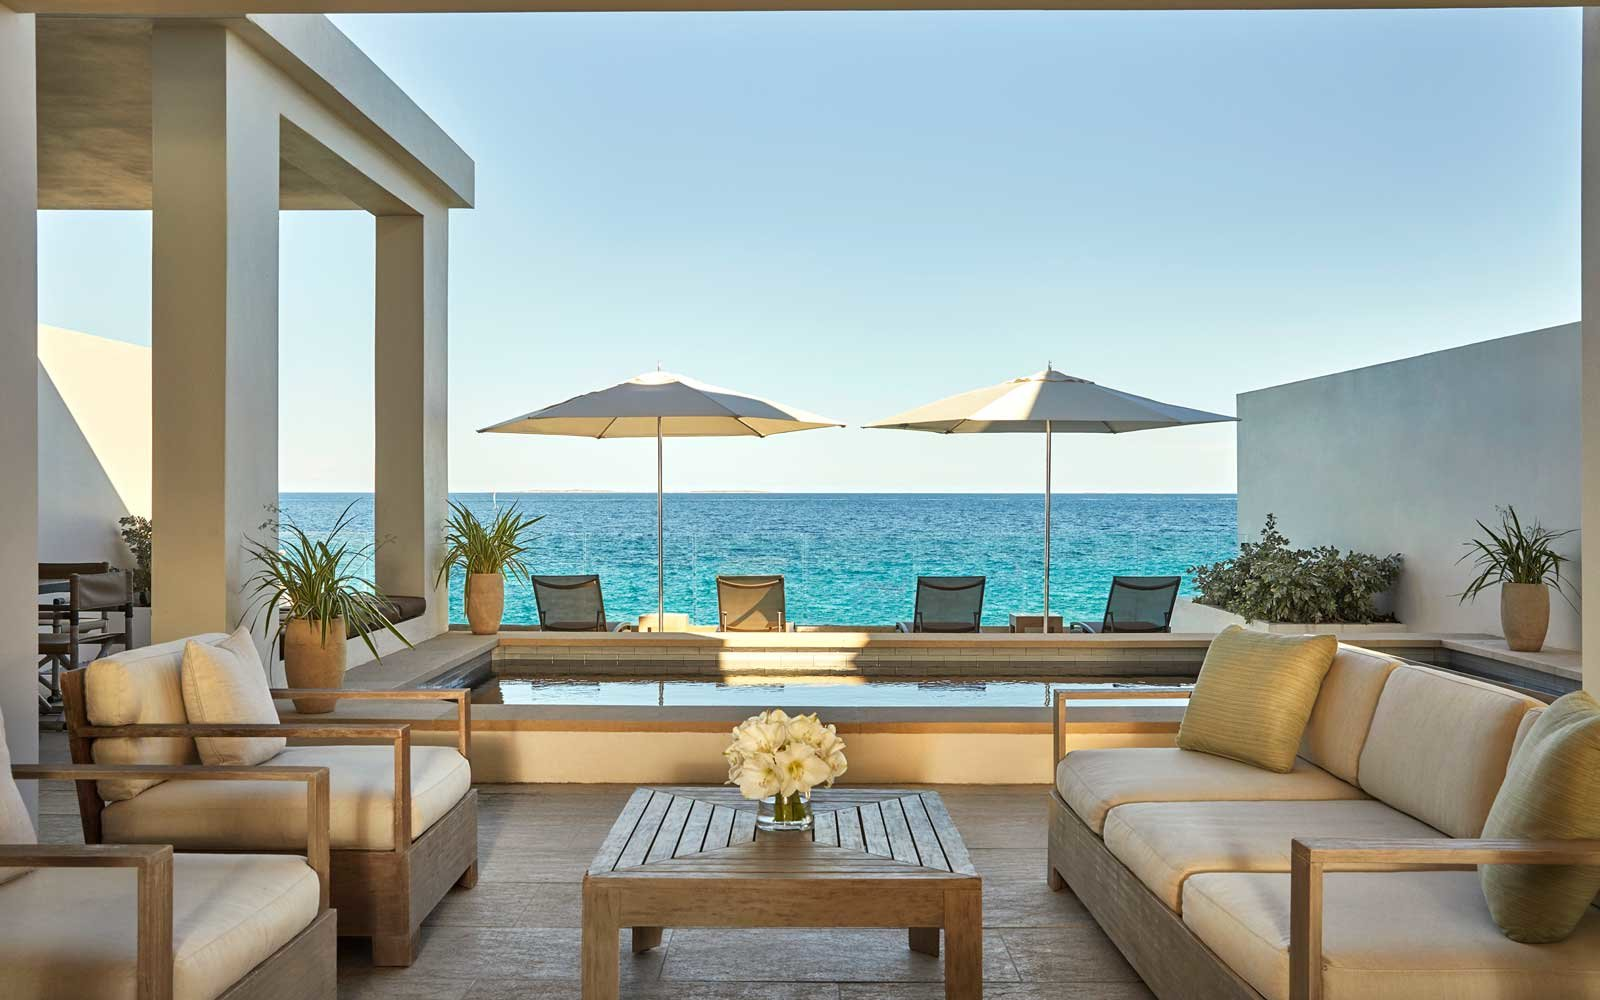 12. Four Seasons Resort & Private Residences, Anguilla